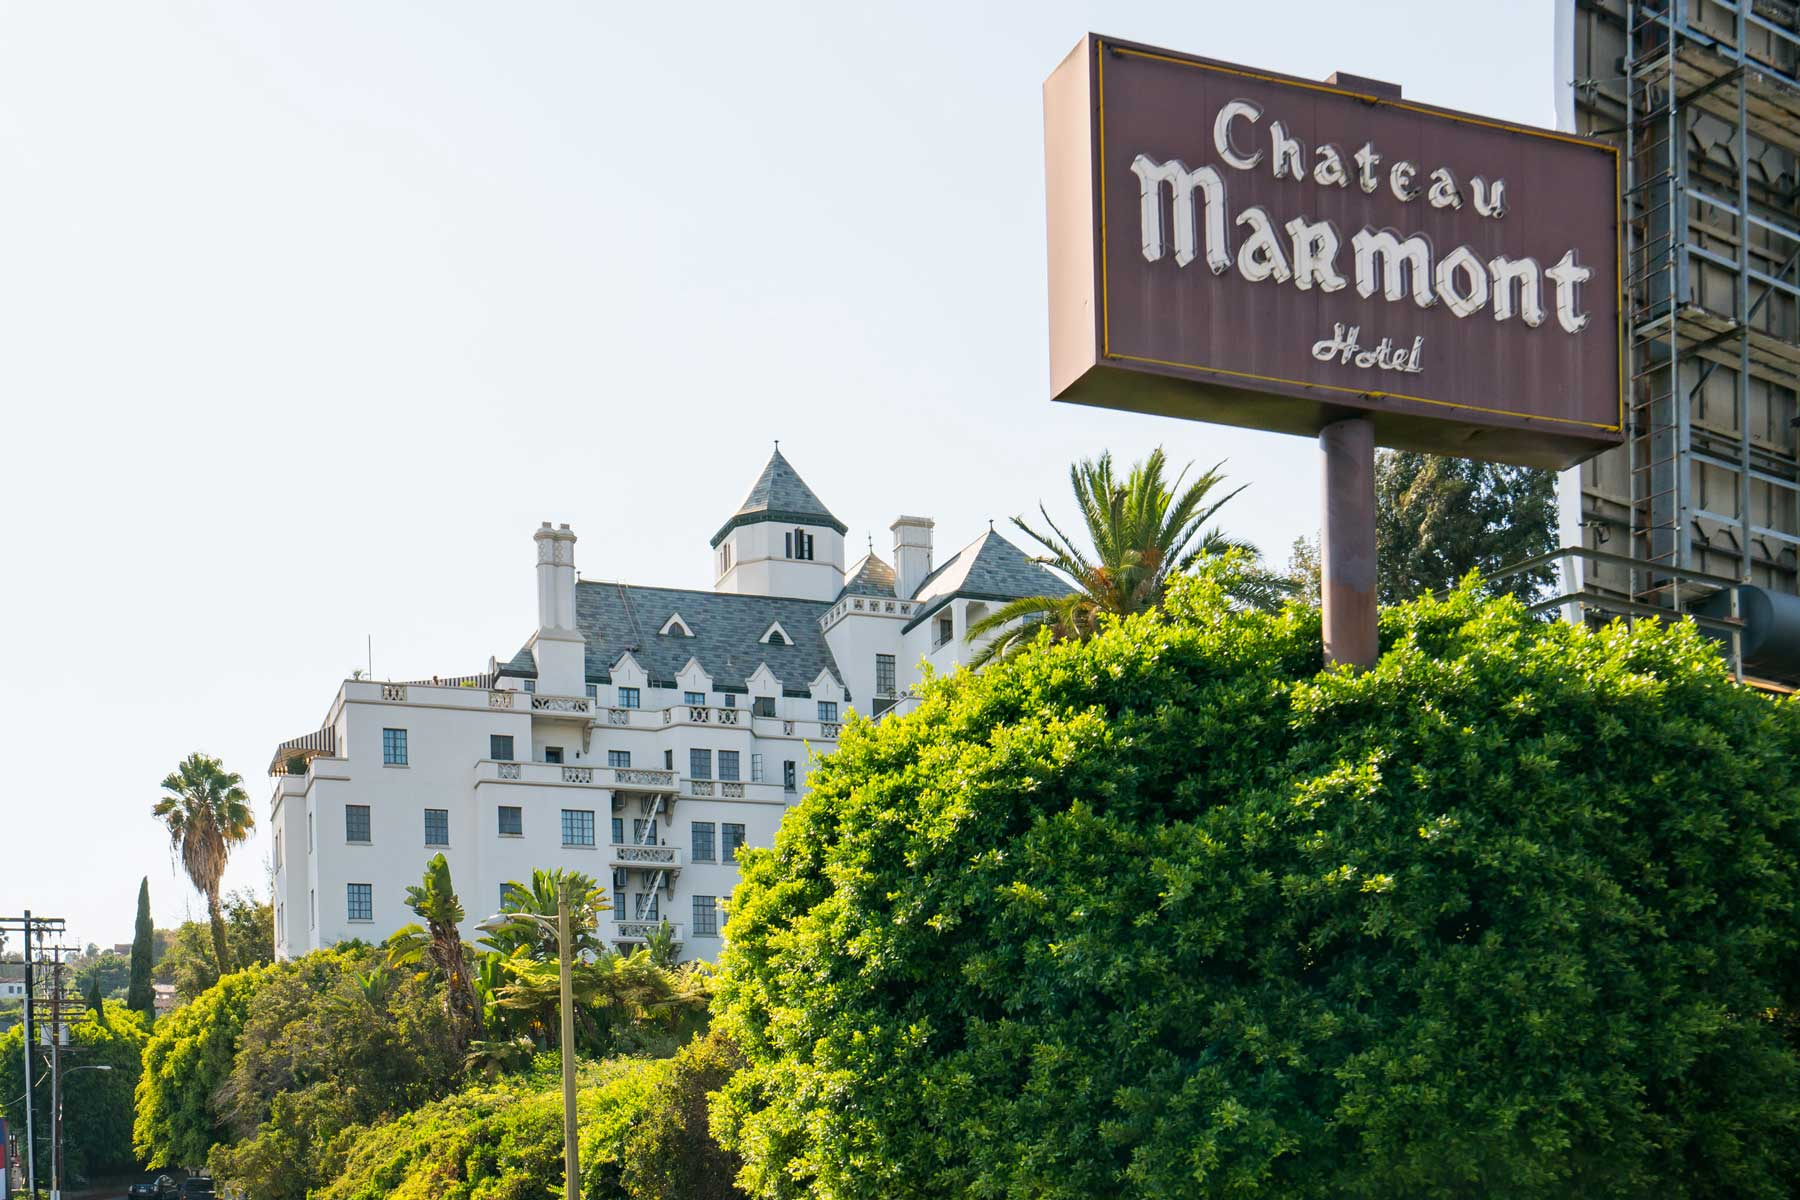 General view of the Chateau Marmont Hotel on December 05, 2016 in Los Angeles, California.